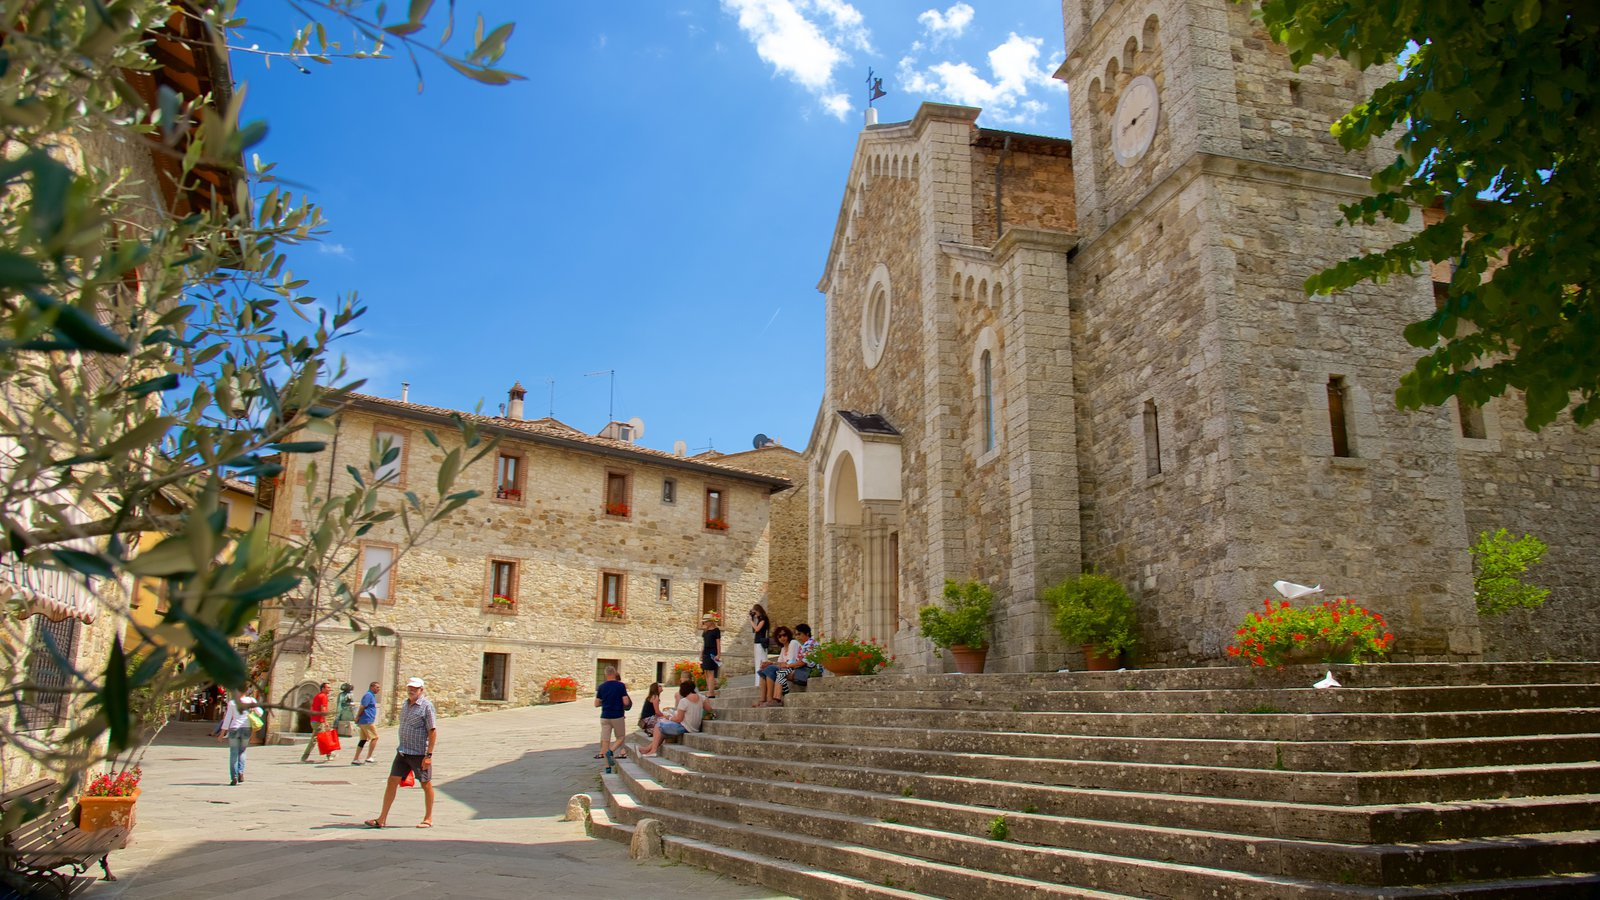 Castellina in Chianti which includes a church or cathedral, religious elements and heritage architecture